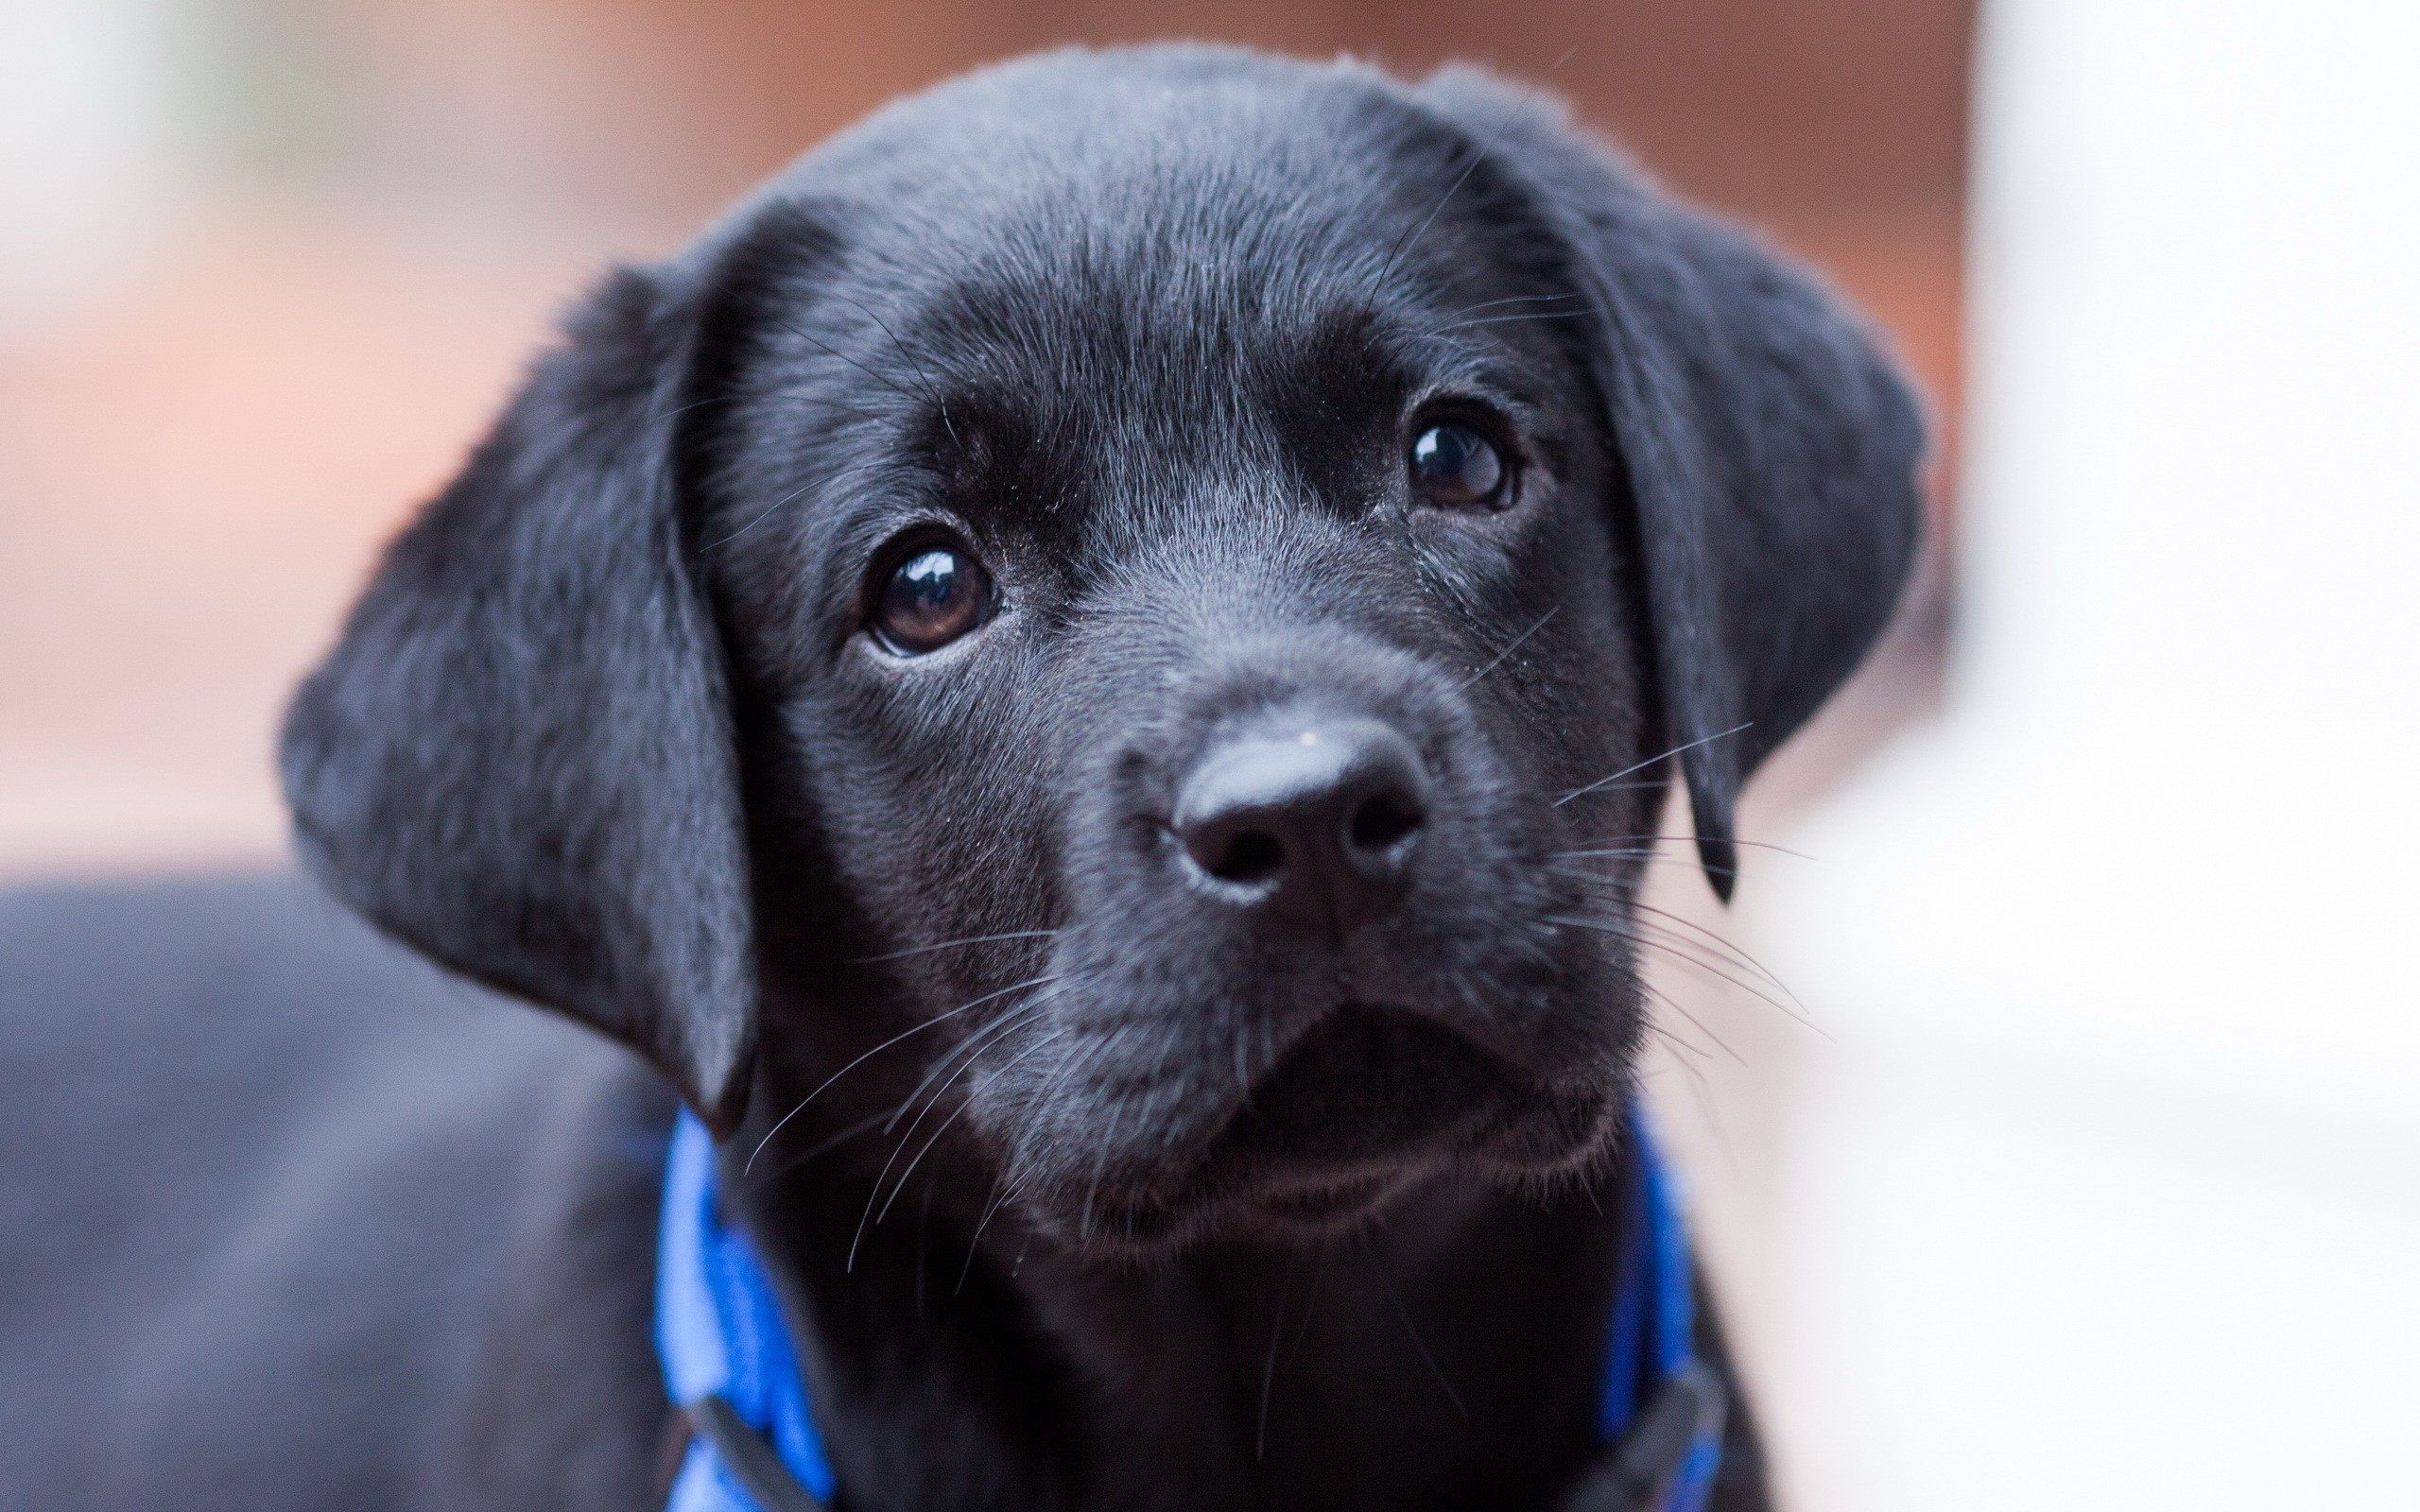 Cute Black Puppy Wallpapers Pictures Black Lab Puppies Black Puppy Cute Puppies